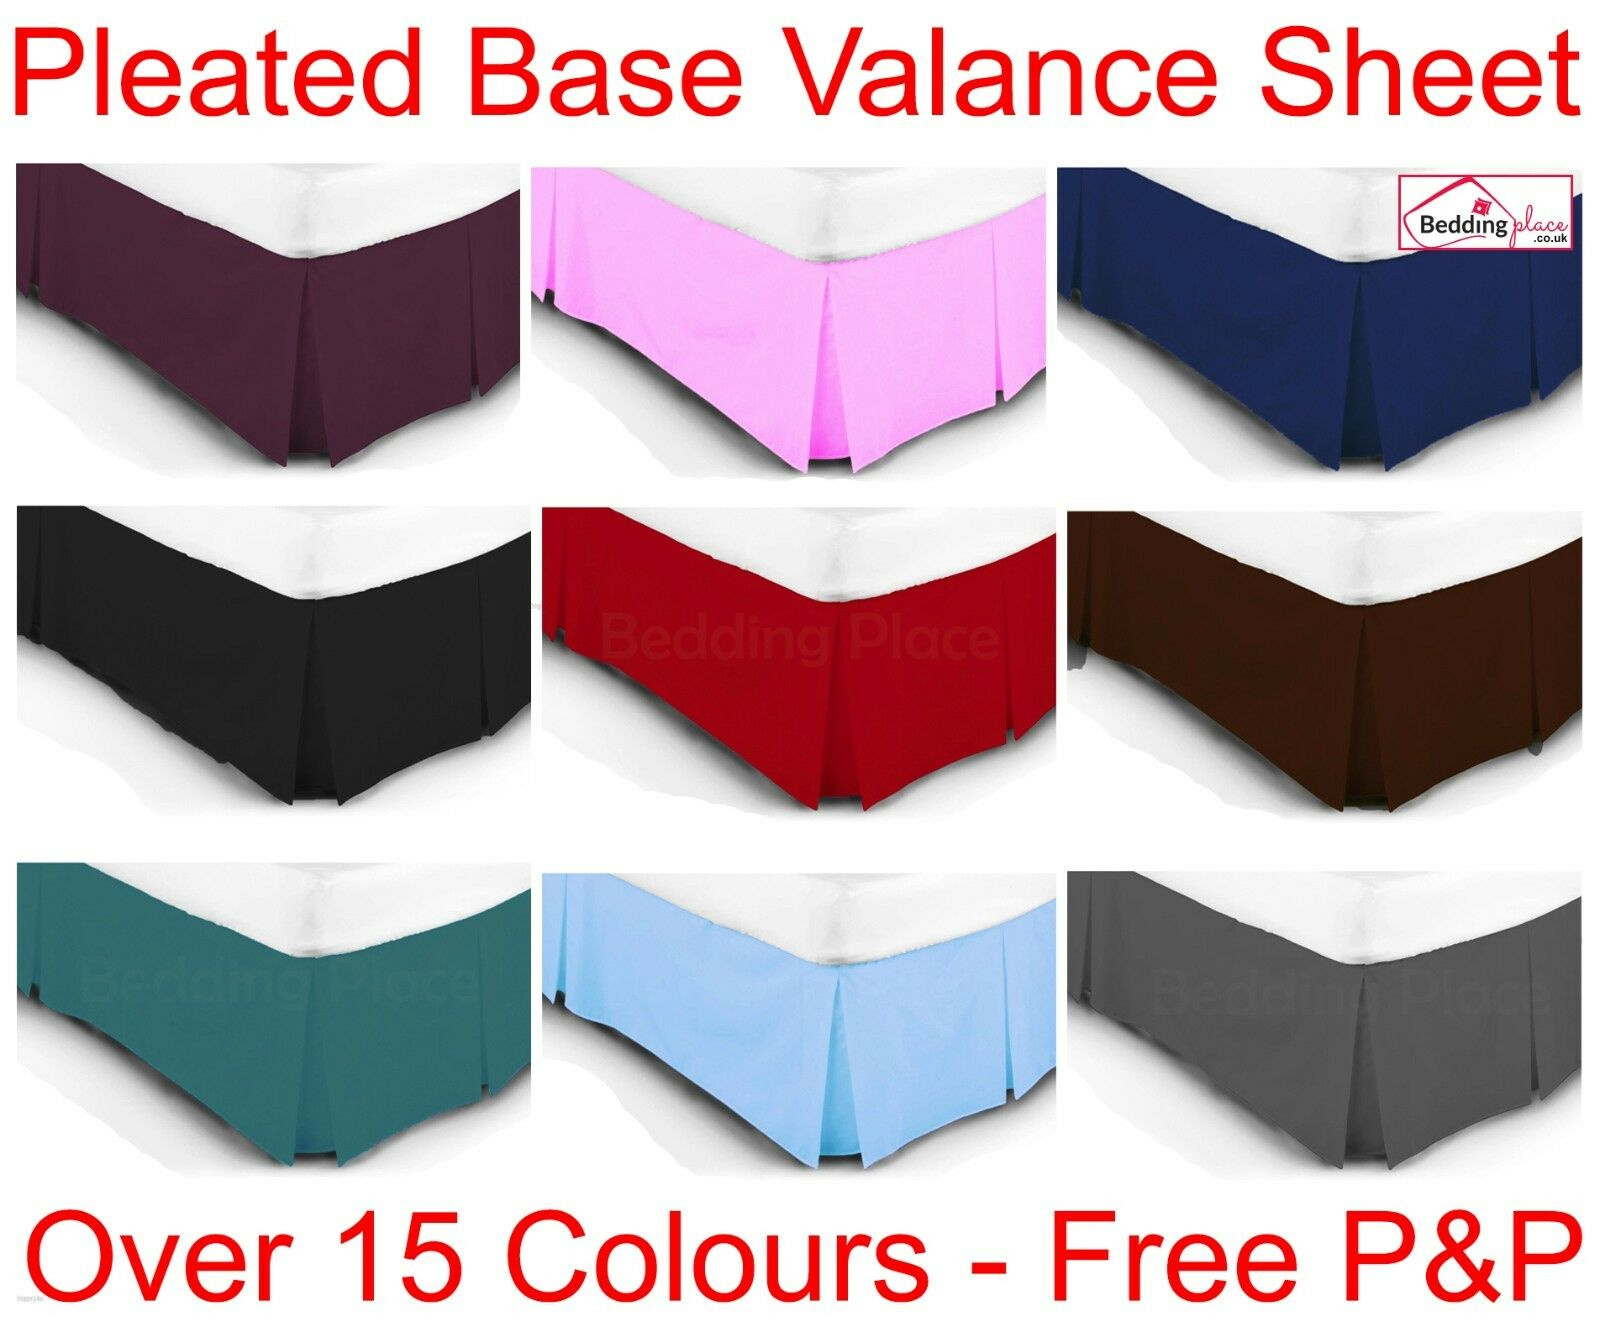 luxury plain dyed poly cotton platform base valance box pleated sheet all sizes. Black Bedroom Furniture Sets. Home Design Ideas